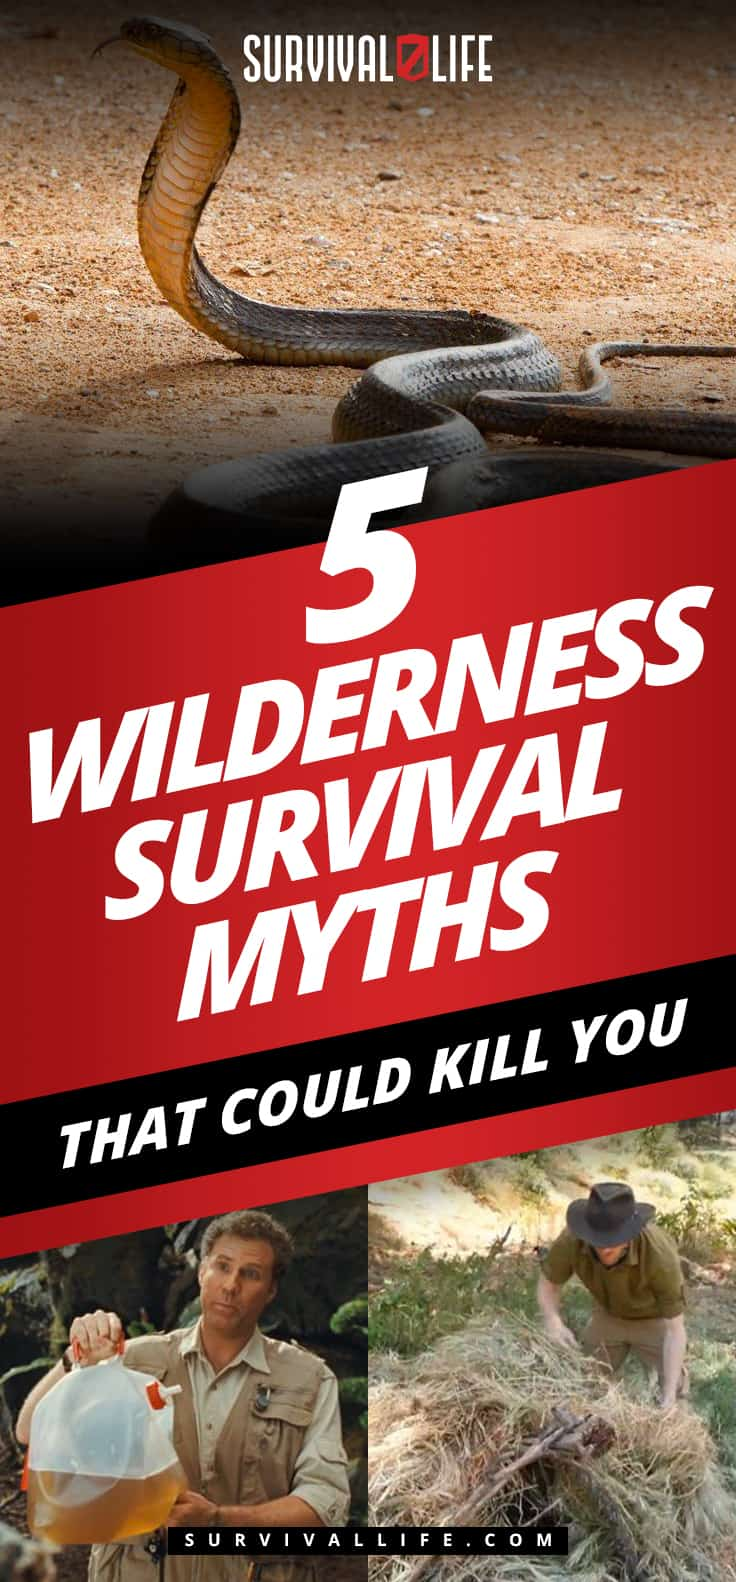 Placard | Wilderness Survival Myths That Could Kill You